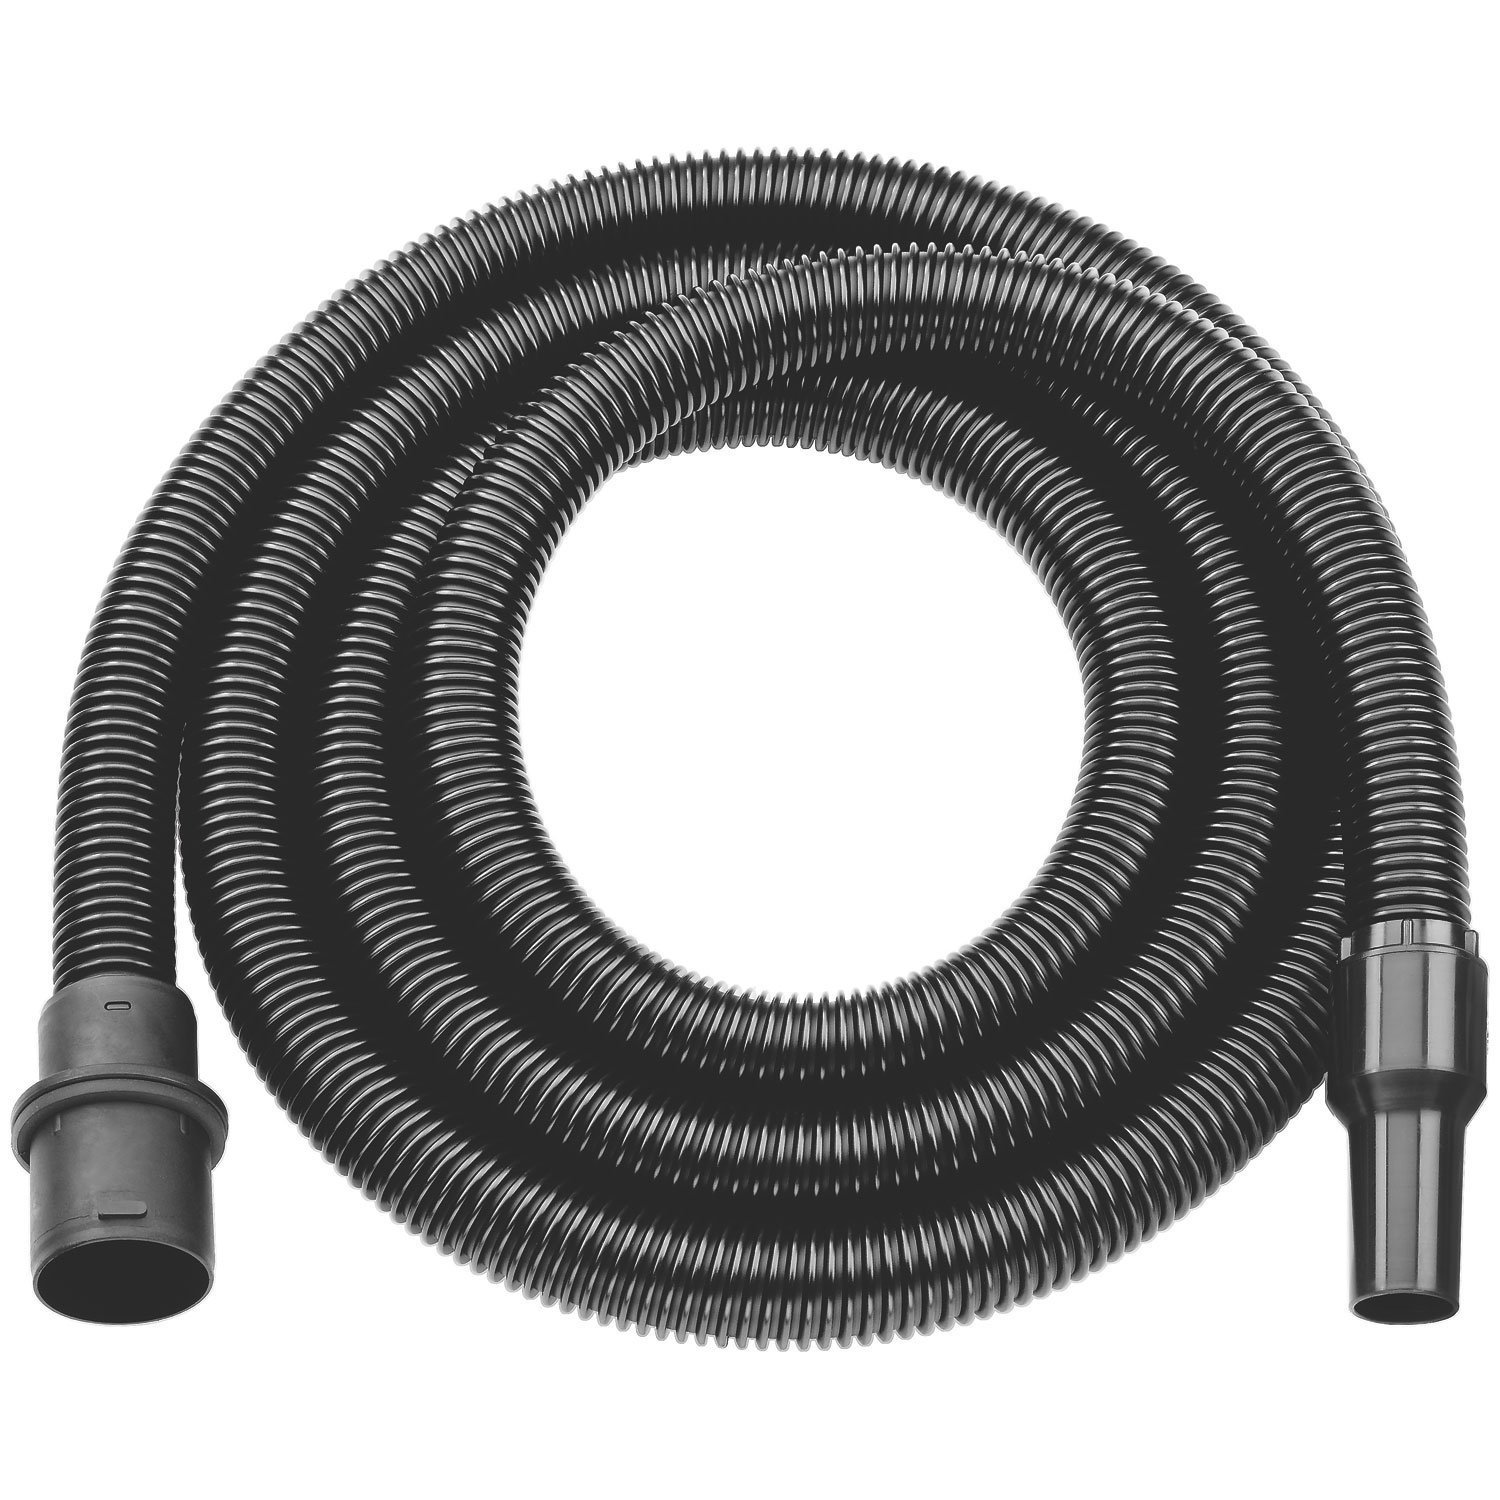 Replacement Vacuum Hoses : Diamond tool dewalt replacement hose for dwv wet